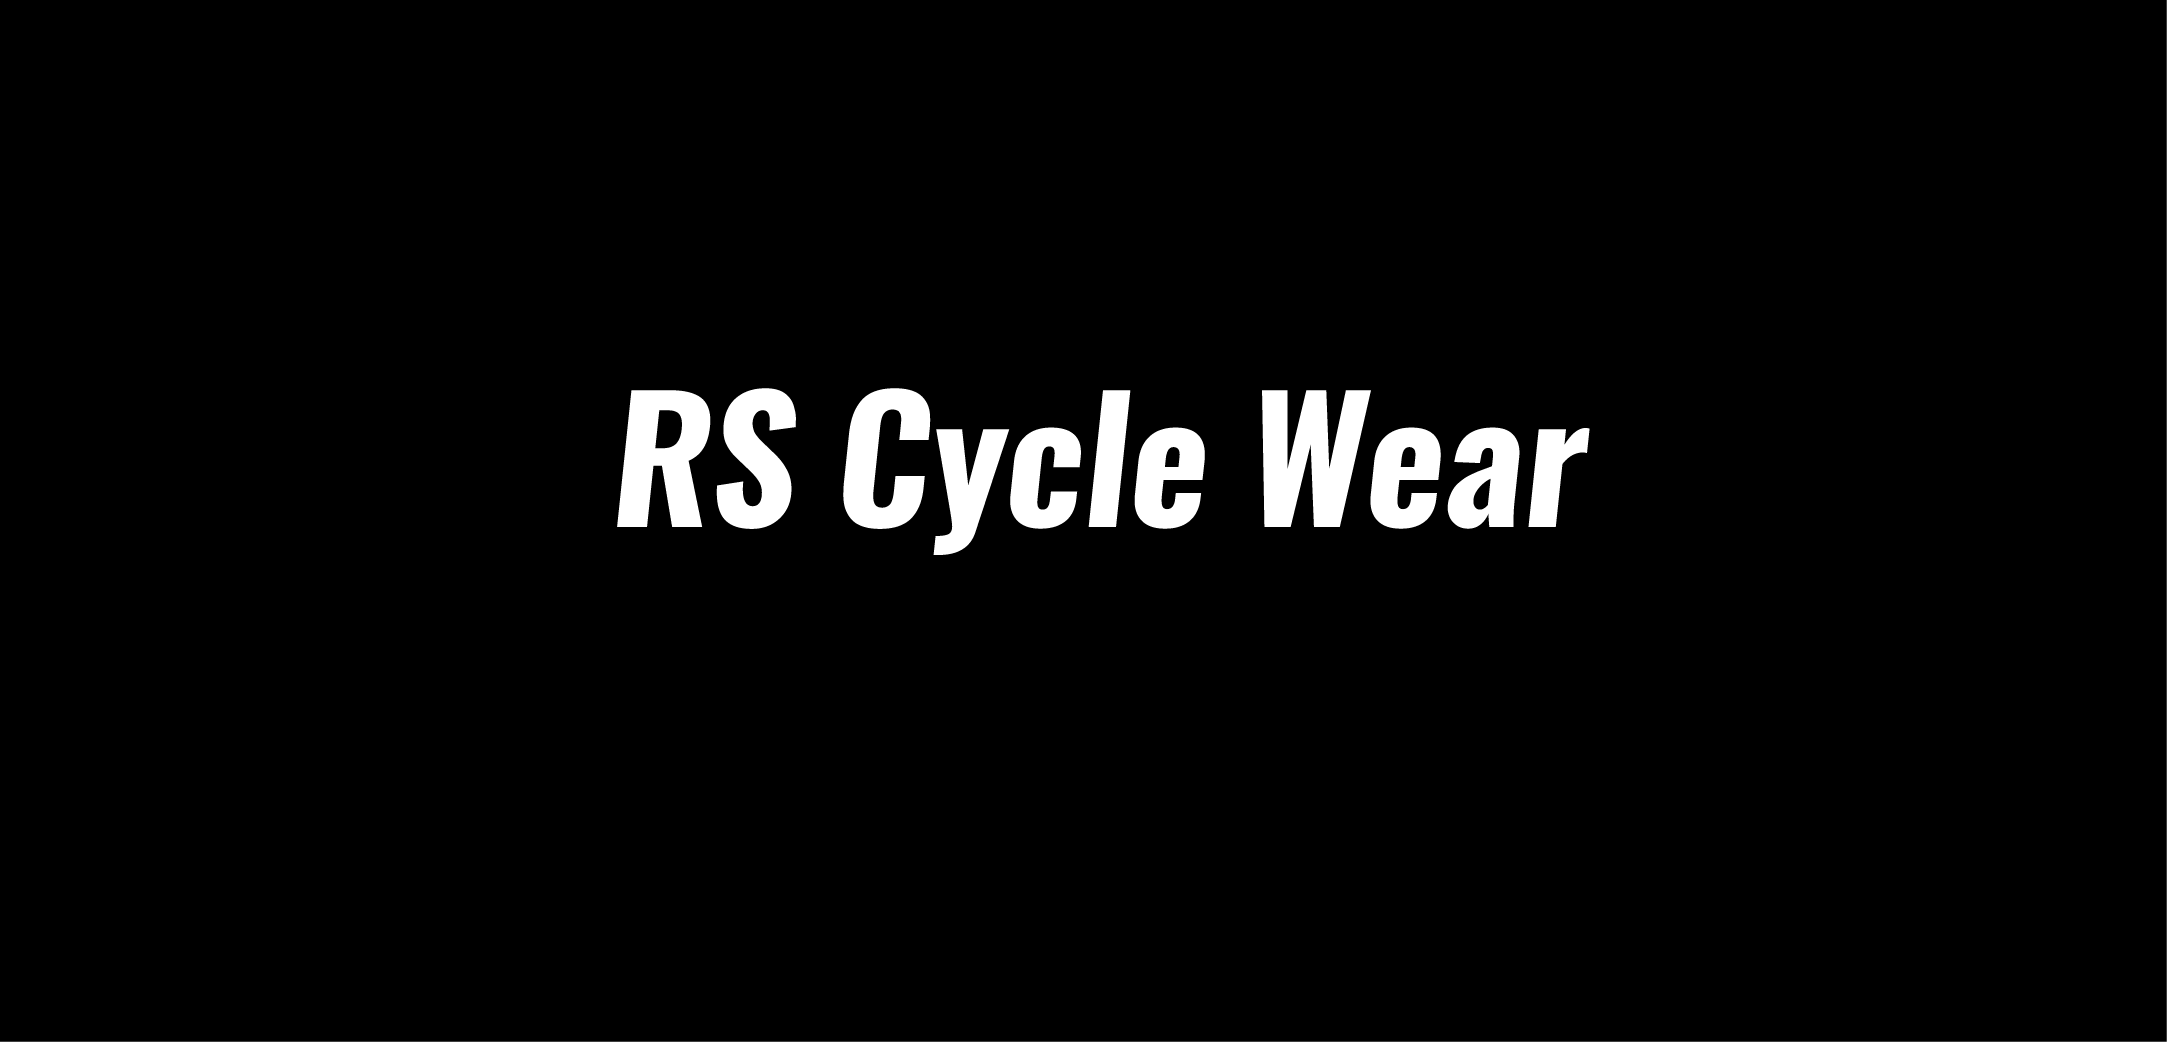 RS Cycle Wear